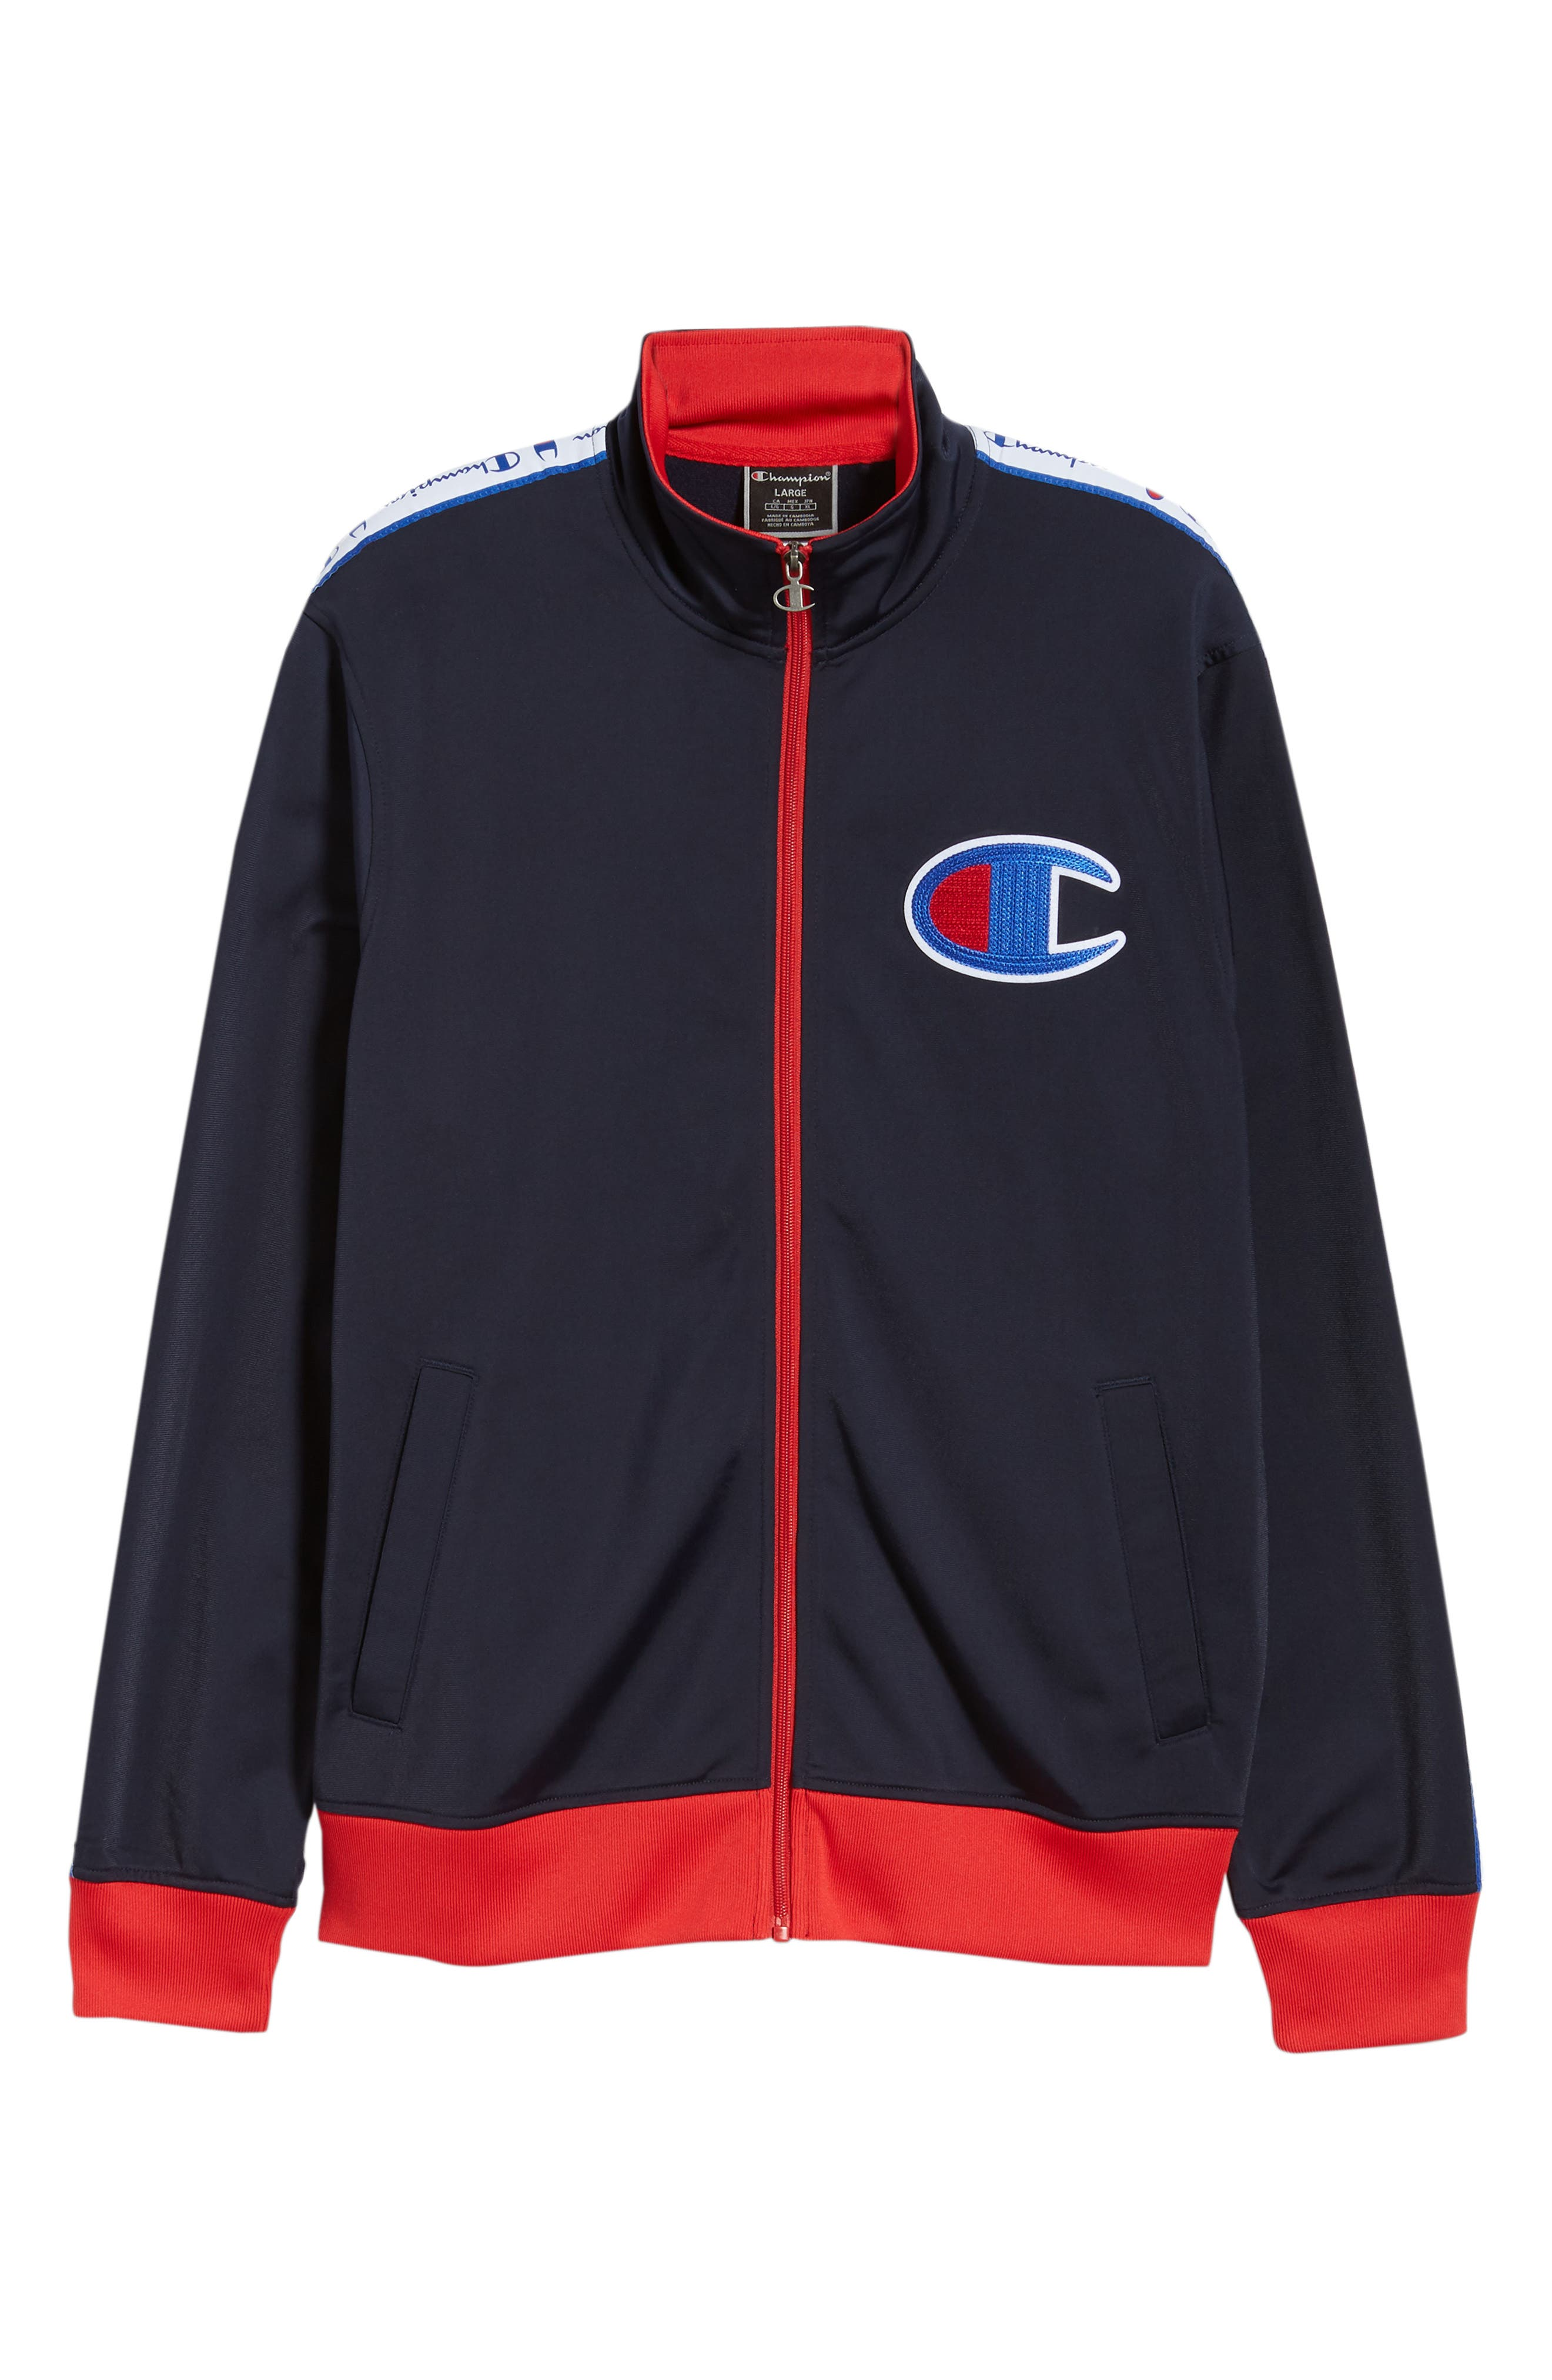 Track Jacket,                             Alternate thumbnail 6, color,                             NAVY/ SCARLET